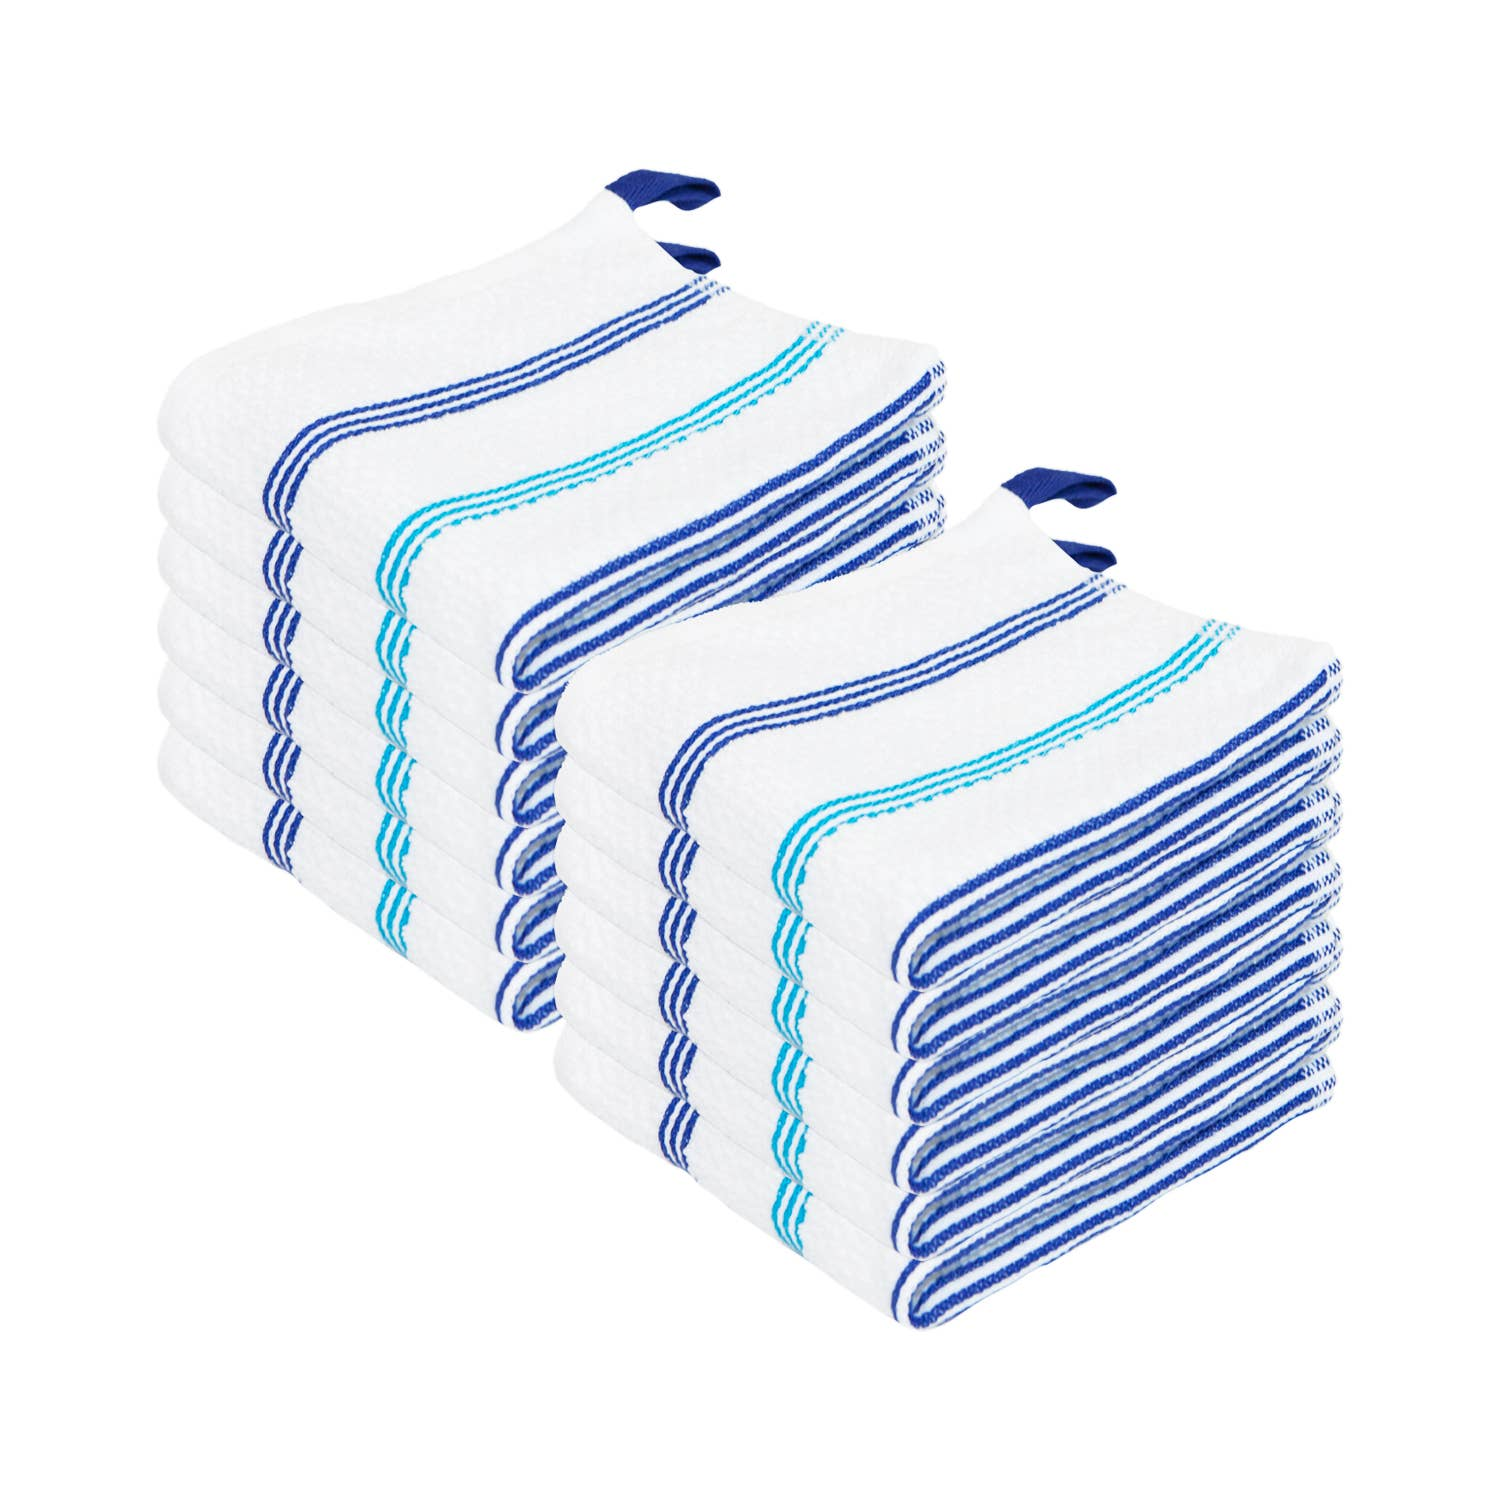 Striped Cotton Dishcloths - 12 Pack - Looped